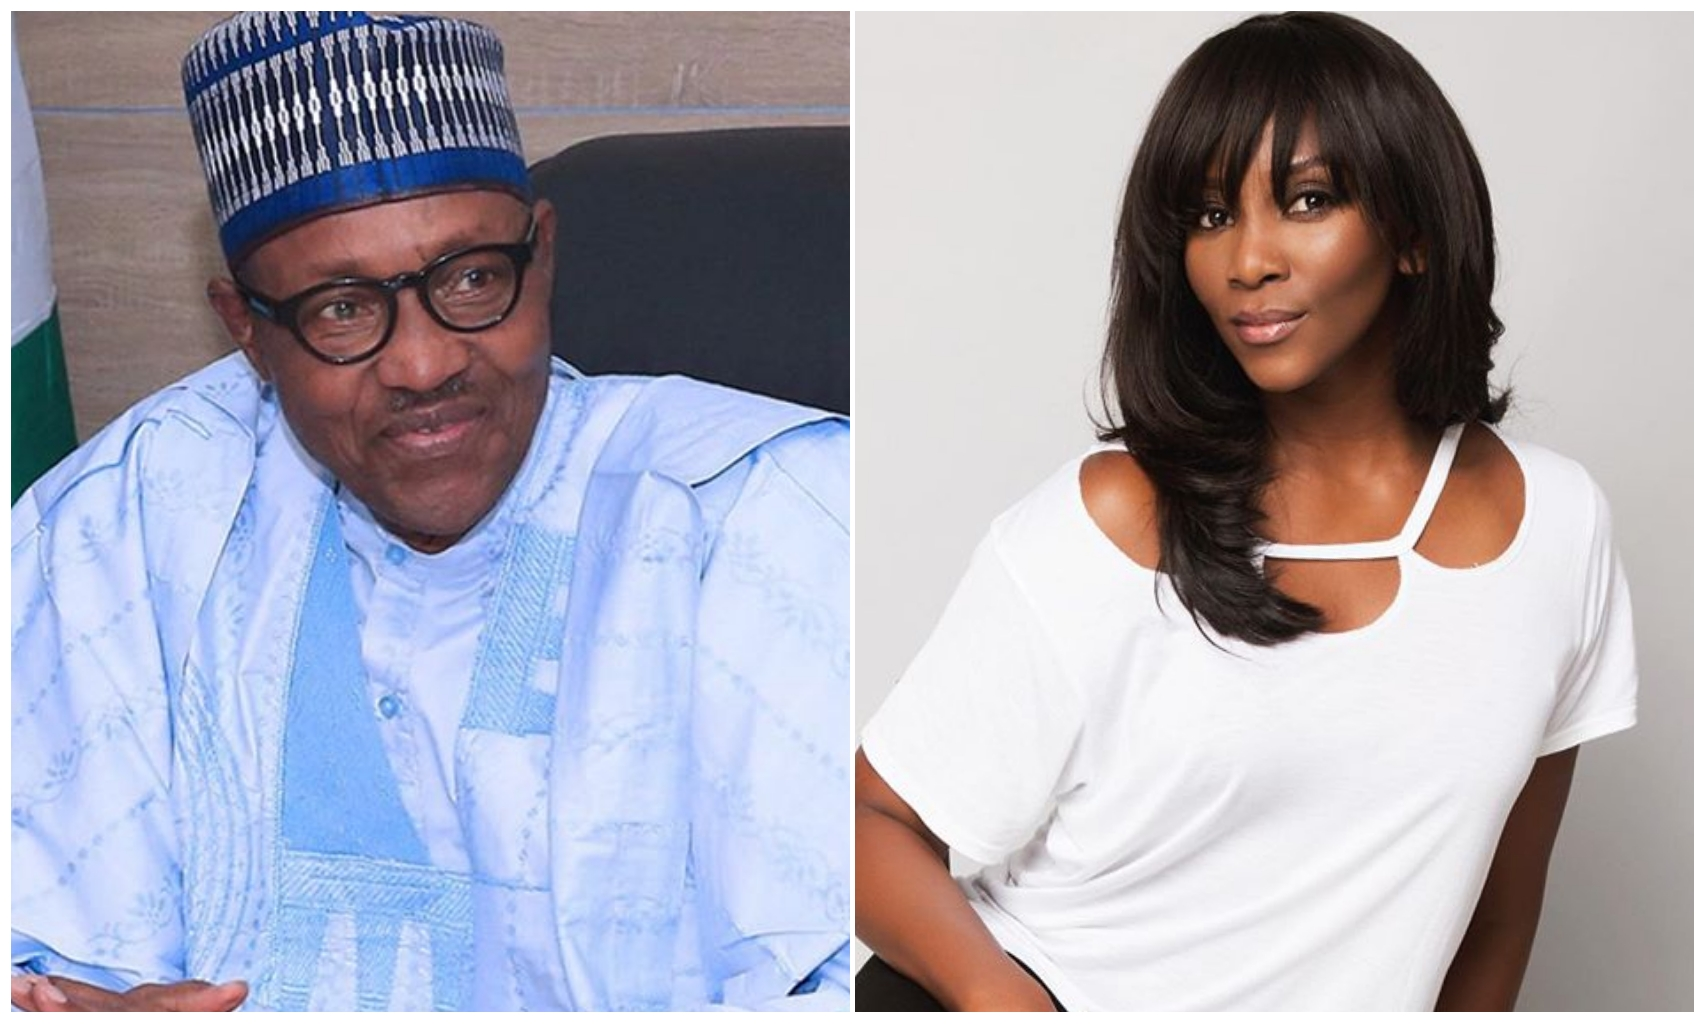 #EndSars: 'My niece was harassed at the age of 13' – Genevieve Nnaji pens open letter to Pres. Buhari